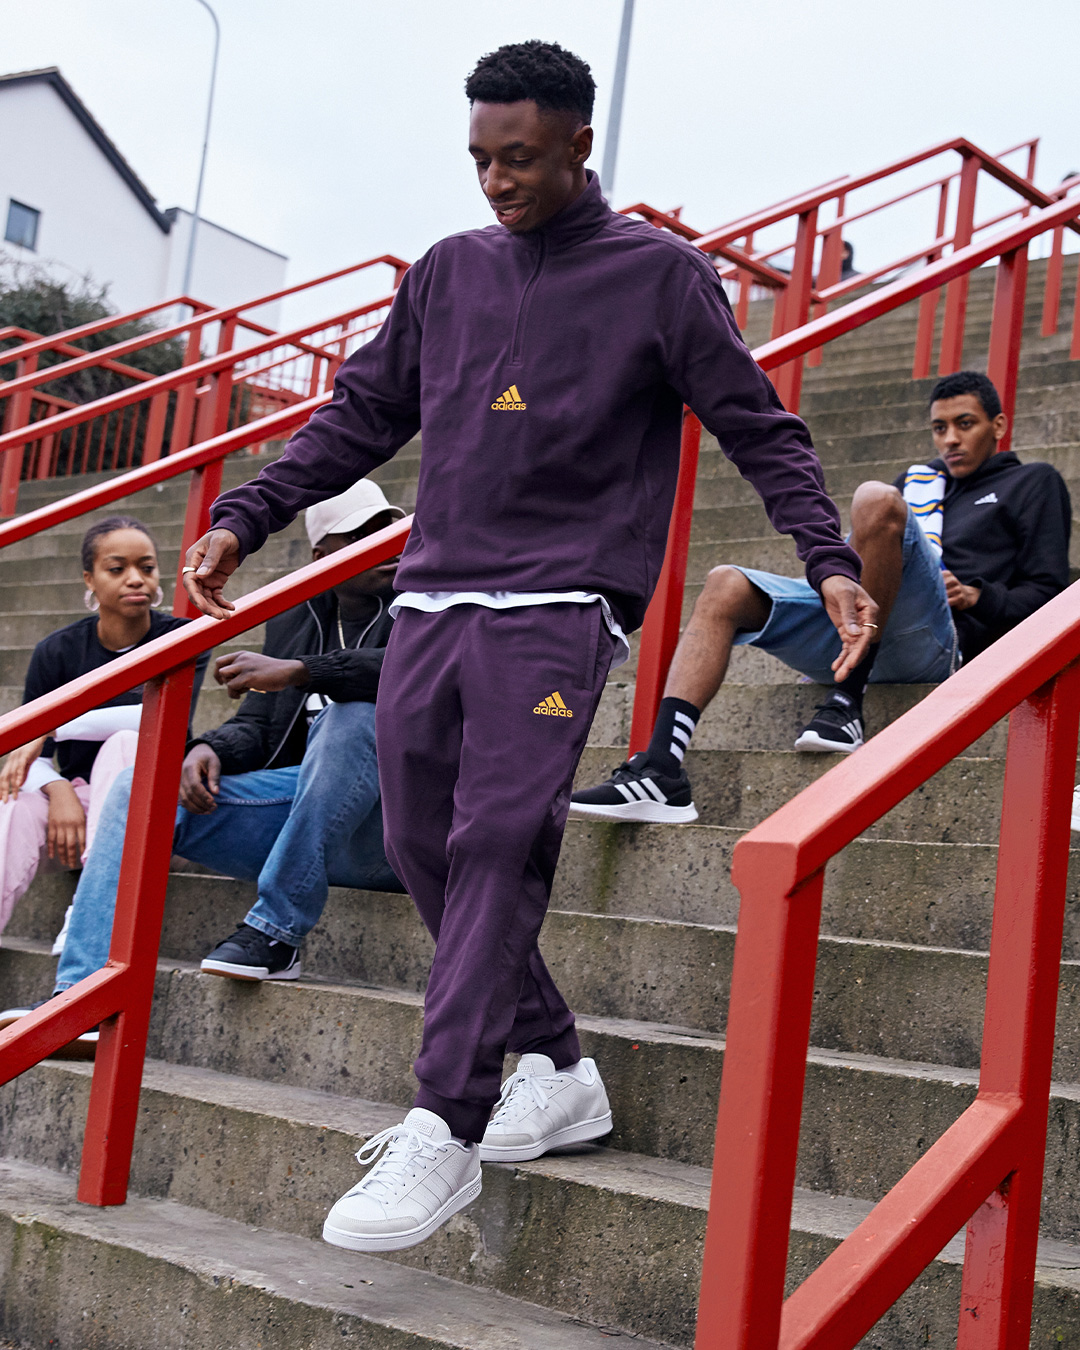 adidas-tobjizzle-supporting-image-3